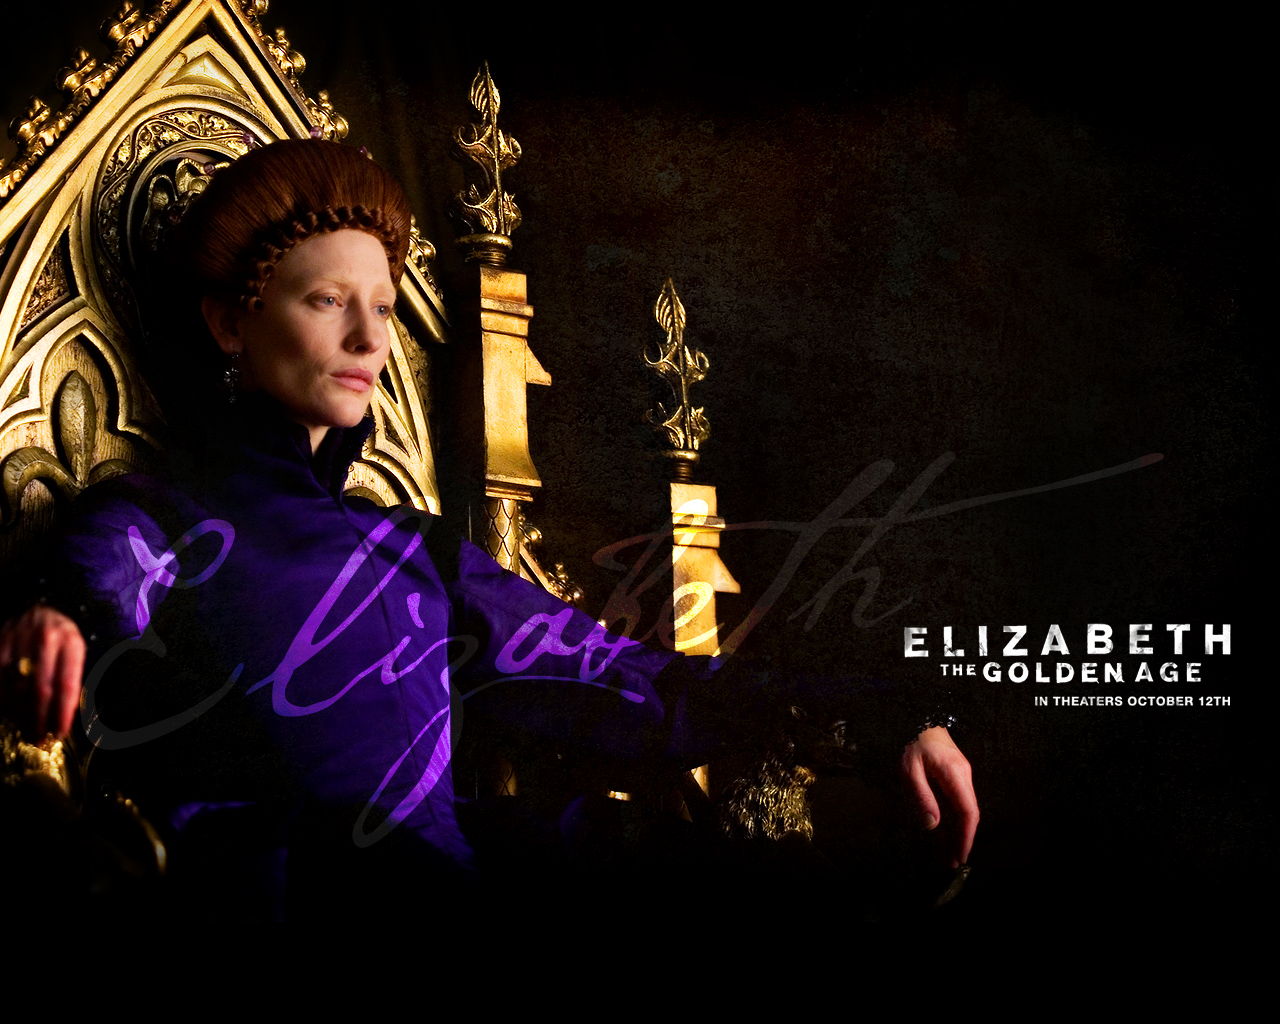 Elizabeth: The Golden Age - Cate Blanchett Wallpaper ...